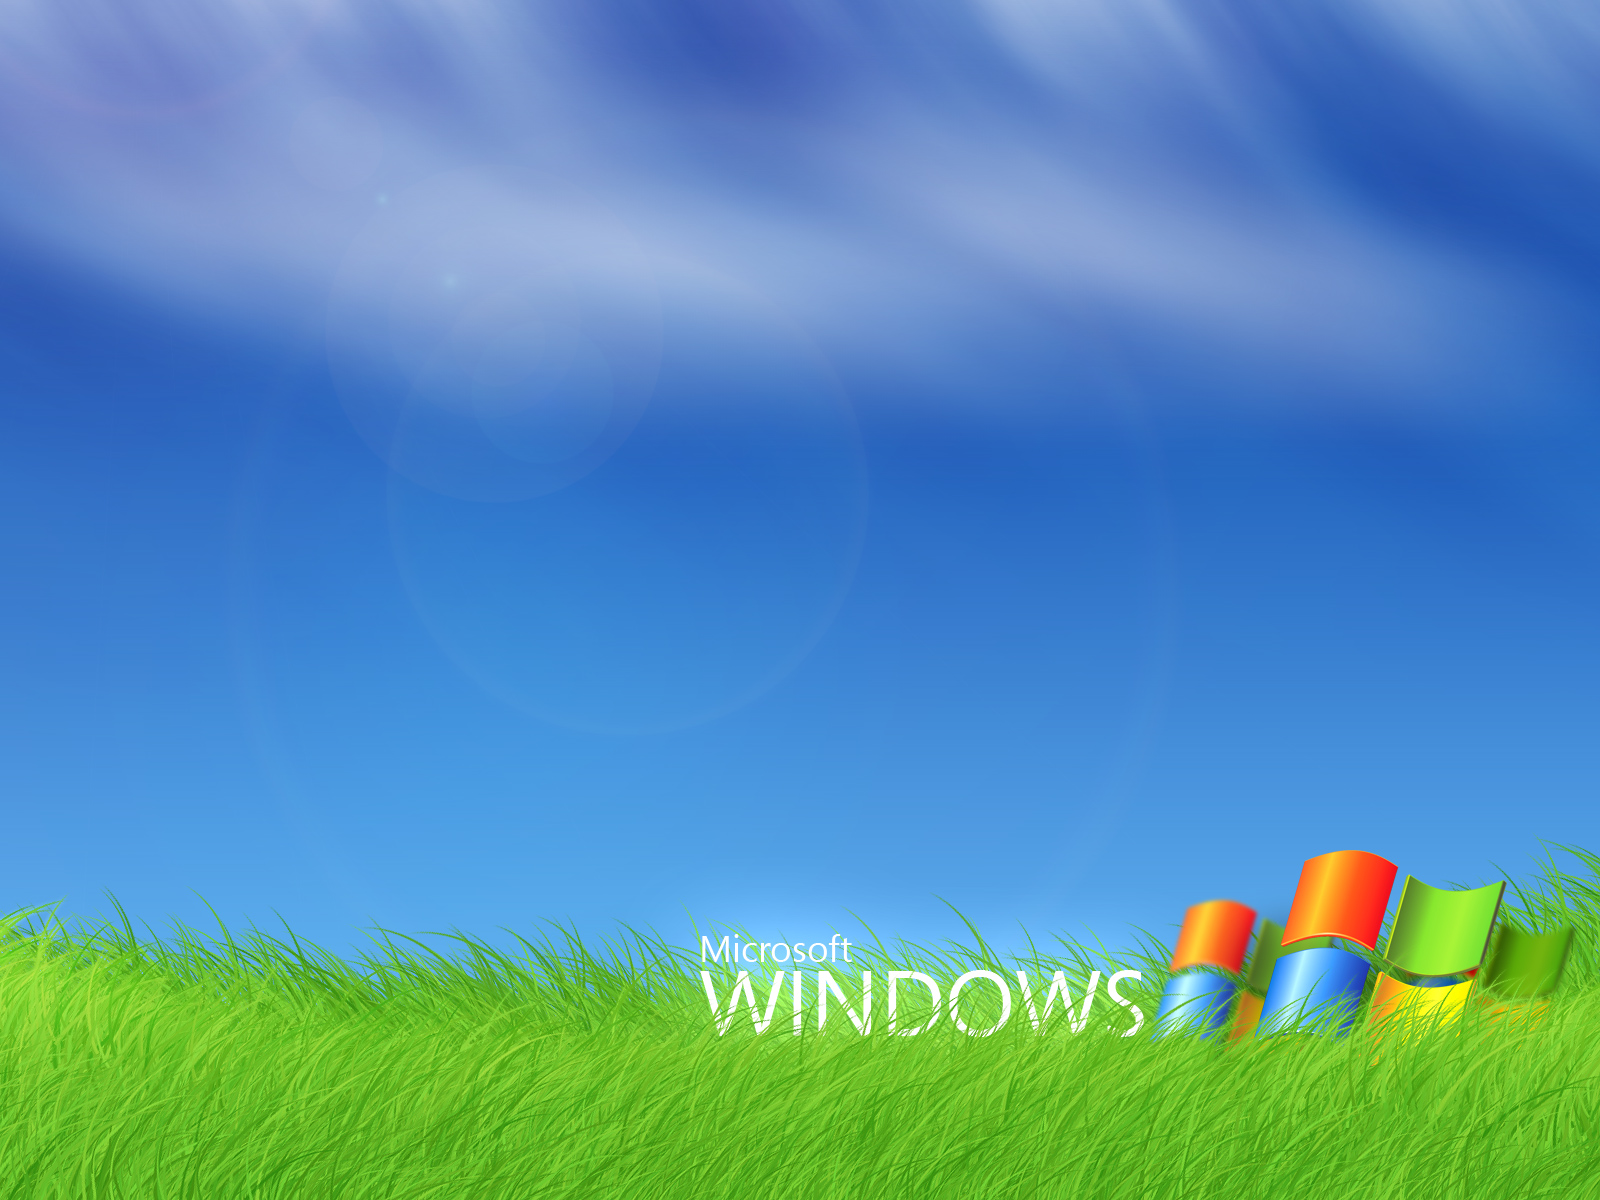 Cool Wallpapers Windows 7 Windows Vista Windows Wallpapers 1600x1200